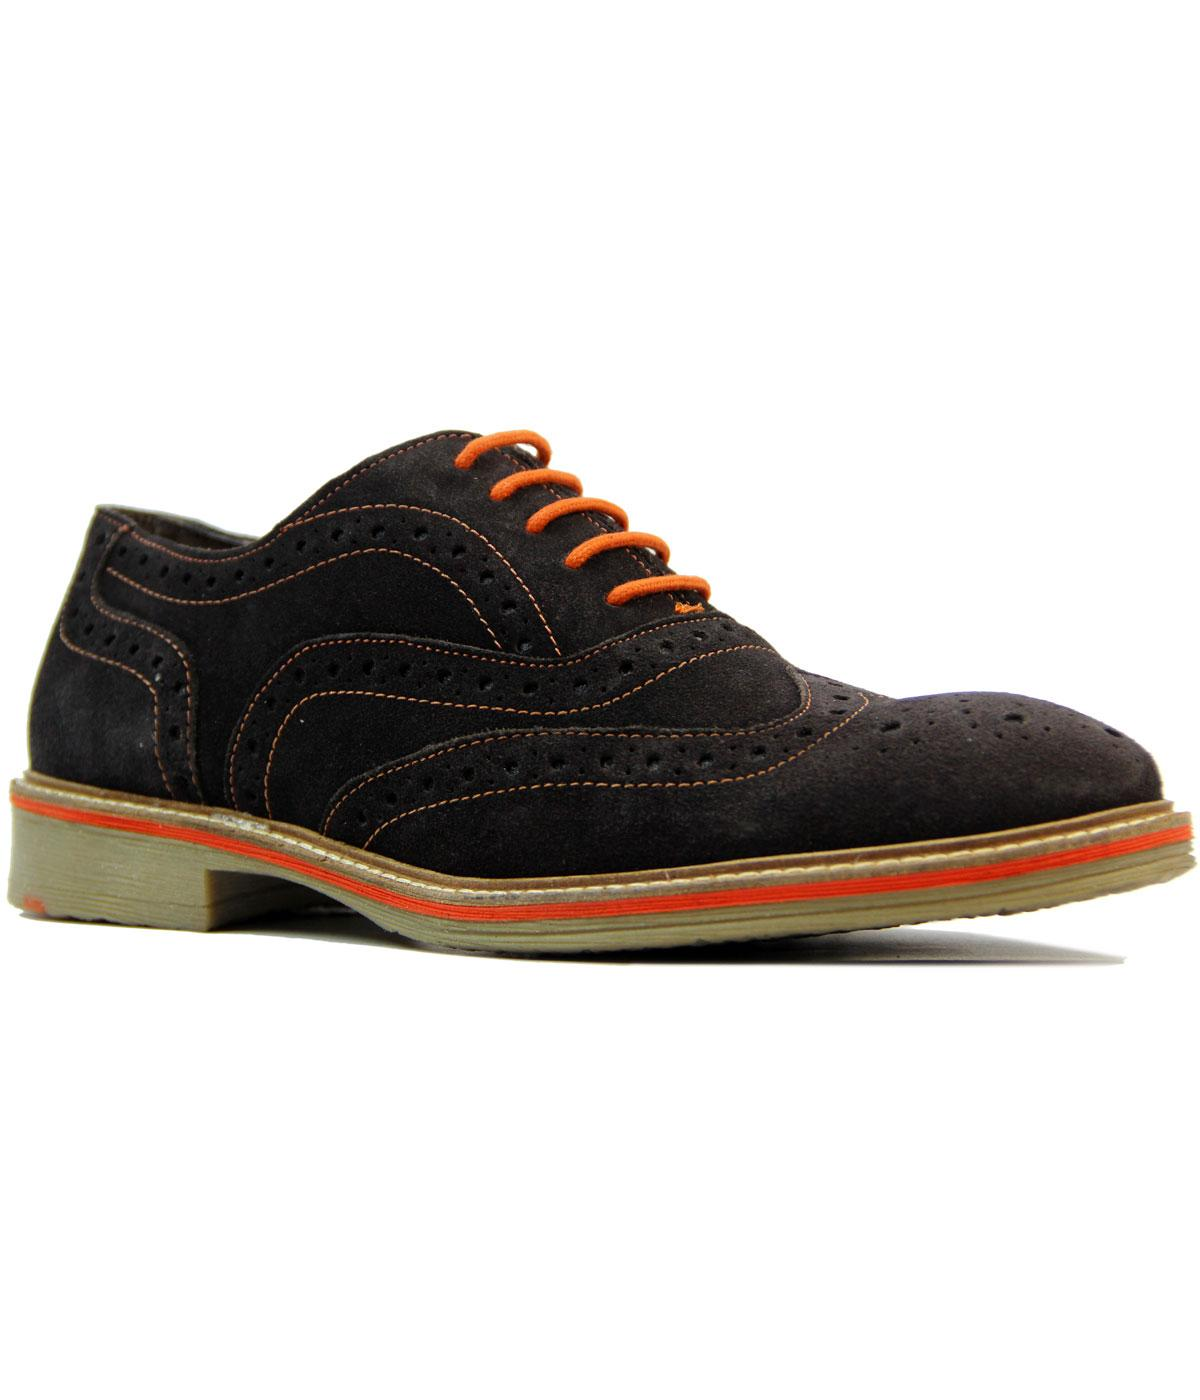 Retro Mod Suede Colour Pop Stitch Oxford Brogues